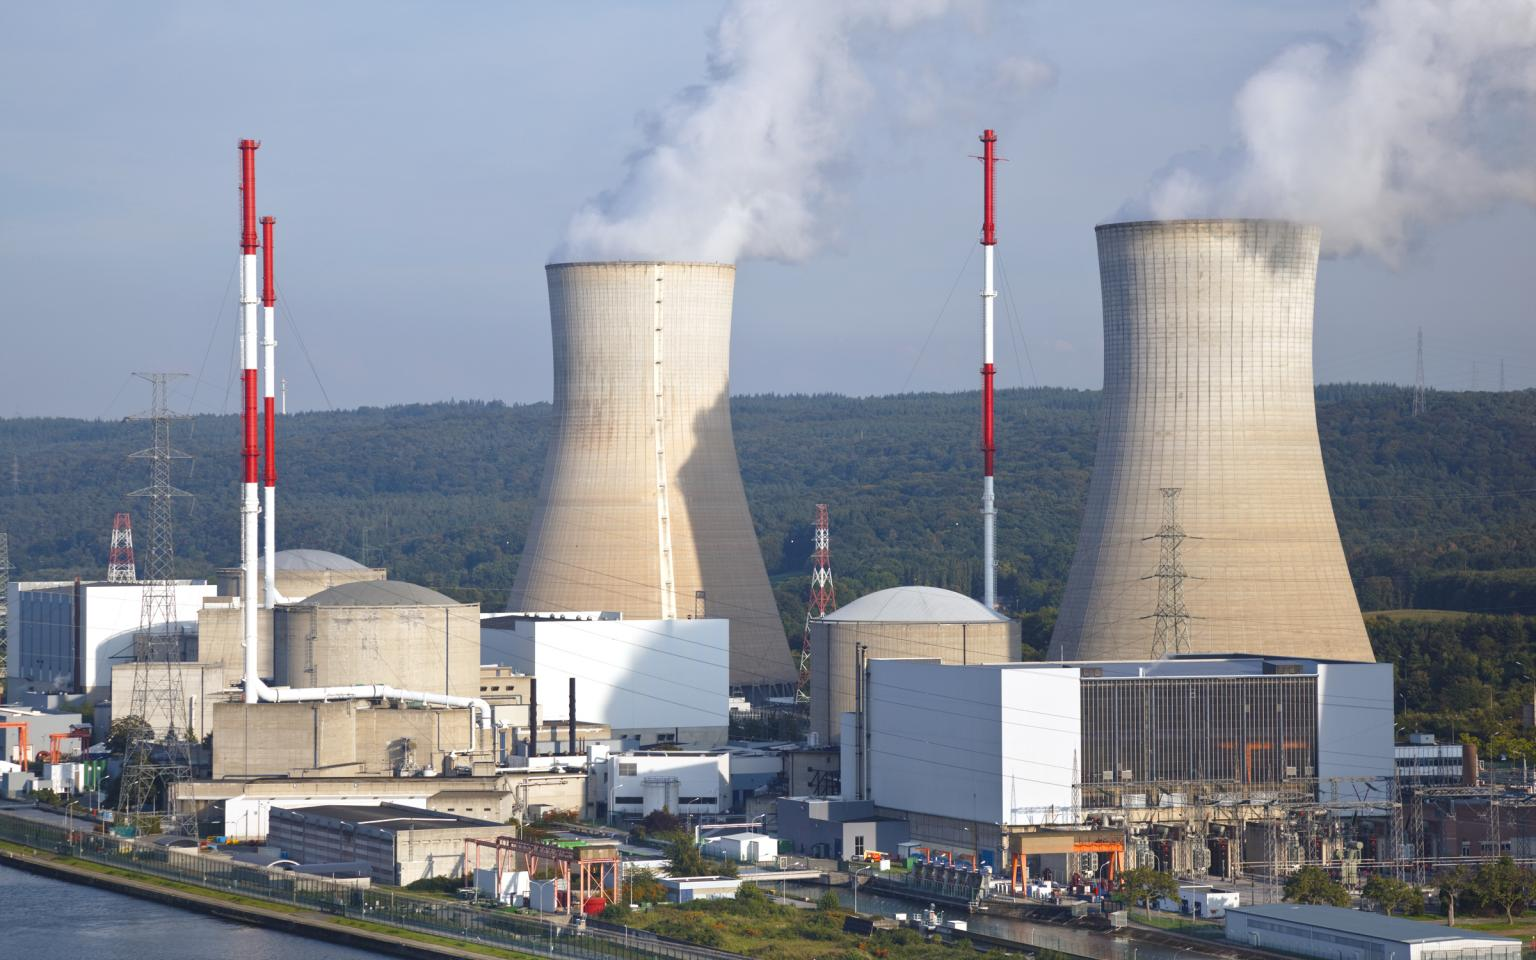 Nuclear power generation makes up an important part of meeting the global demand for energy, with 31 countries across the world using over 430 nuclear power plants to meet close to 14% of global electricity demand